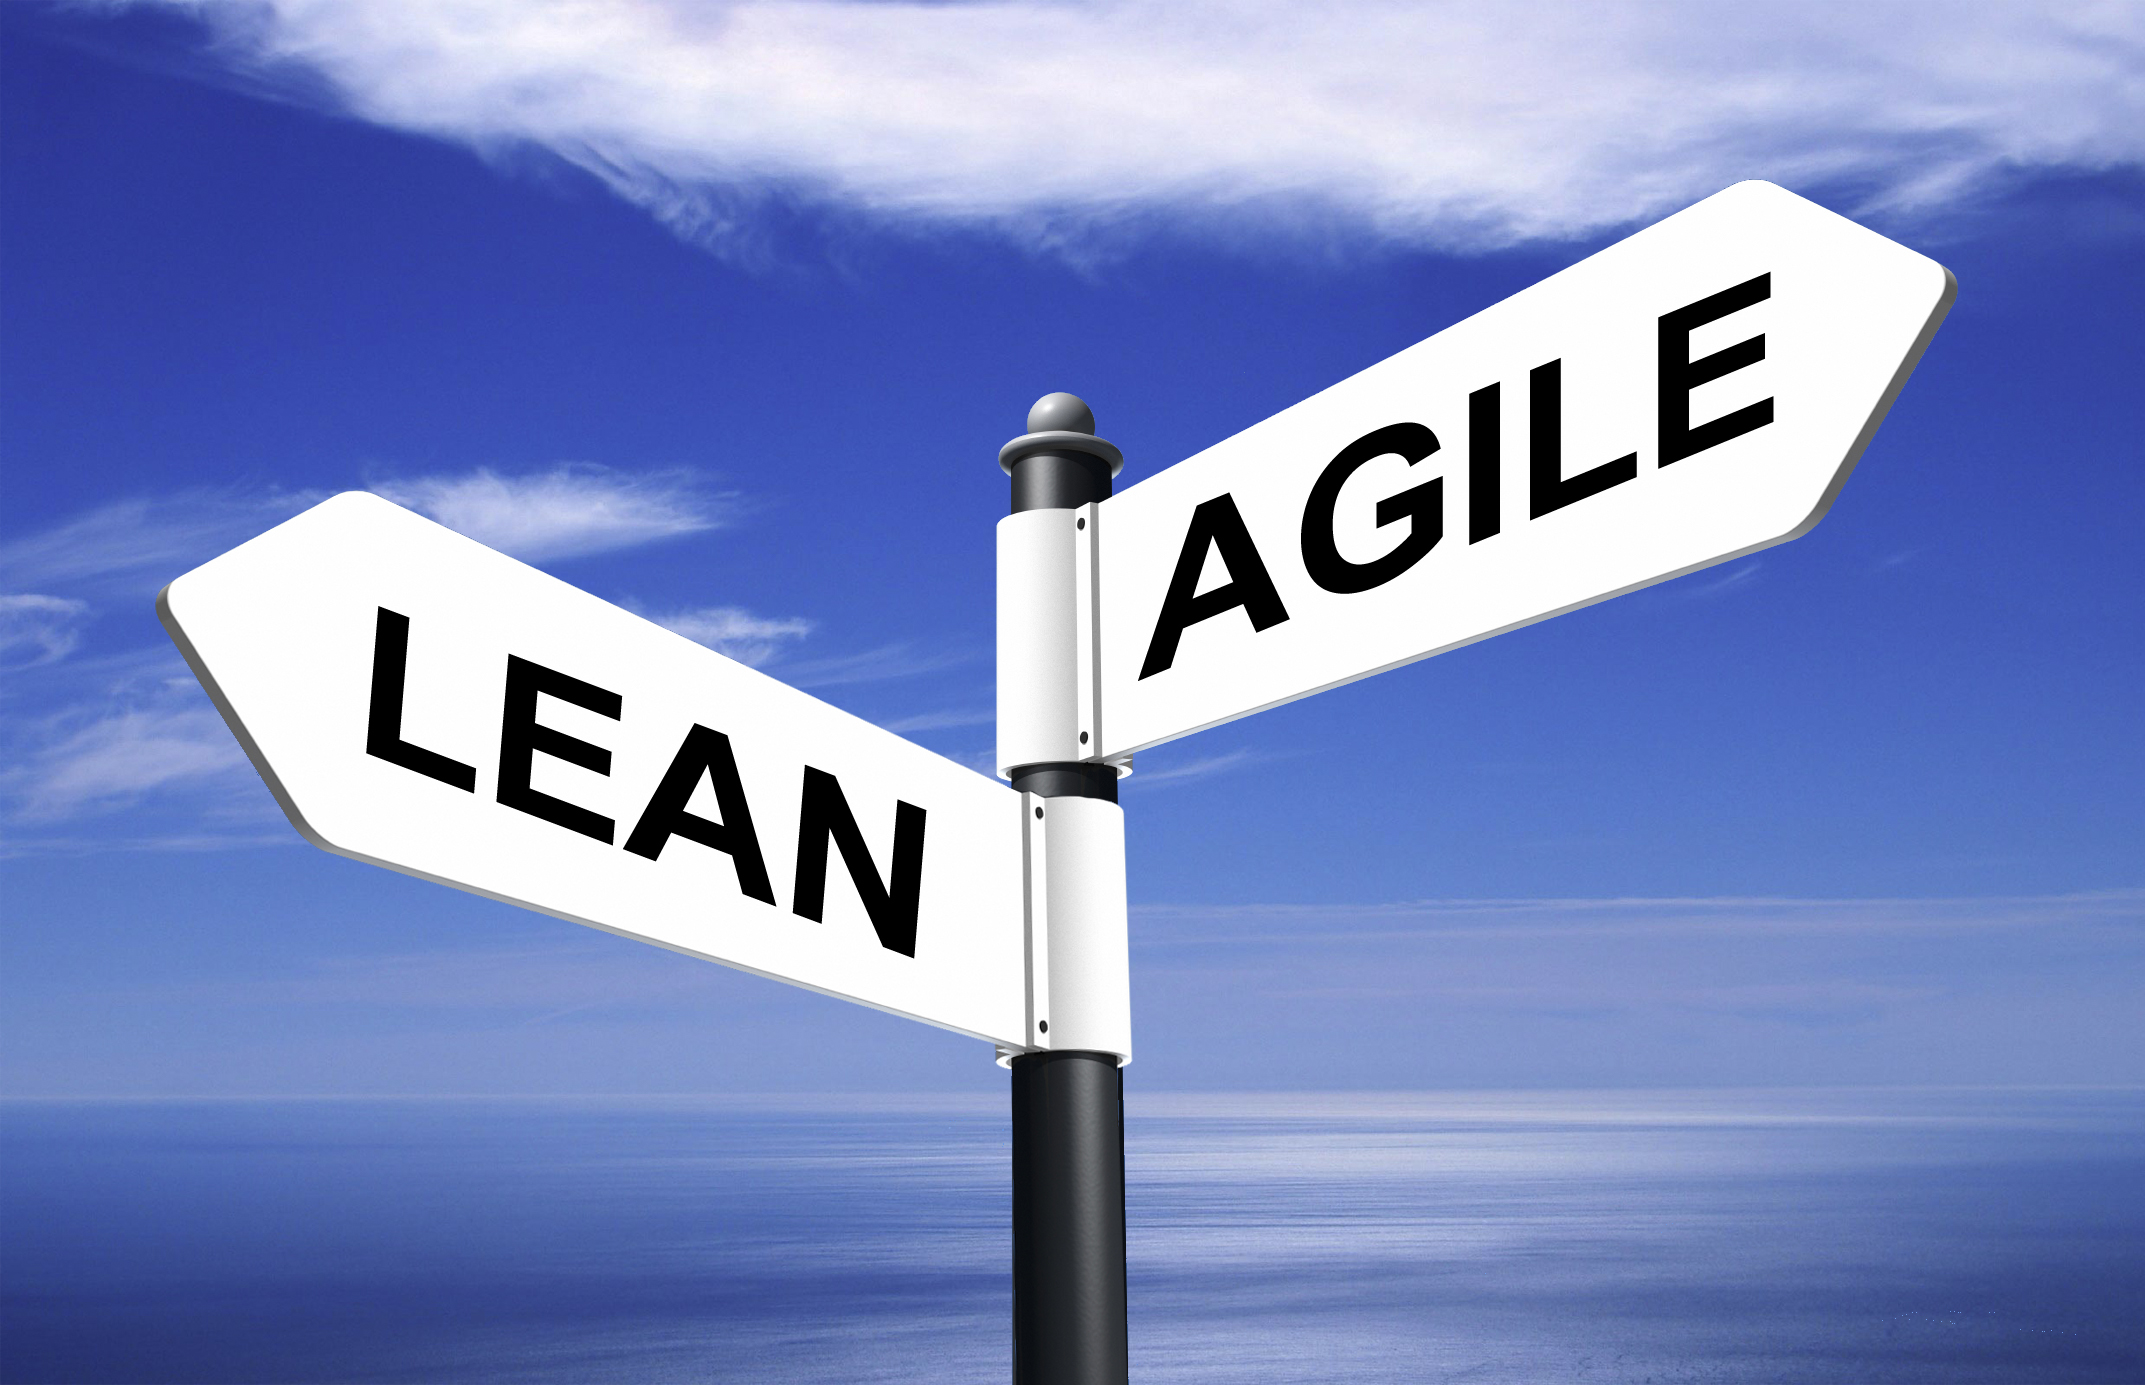 Lean or Agile – How to choose?